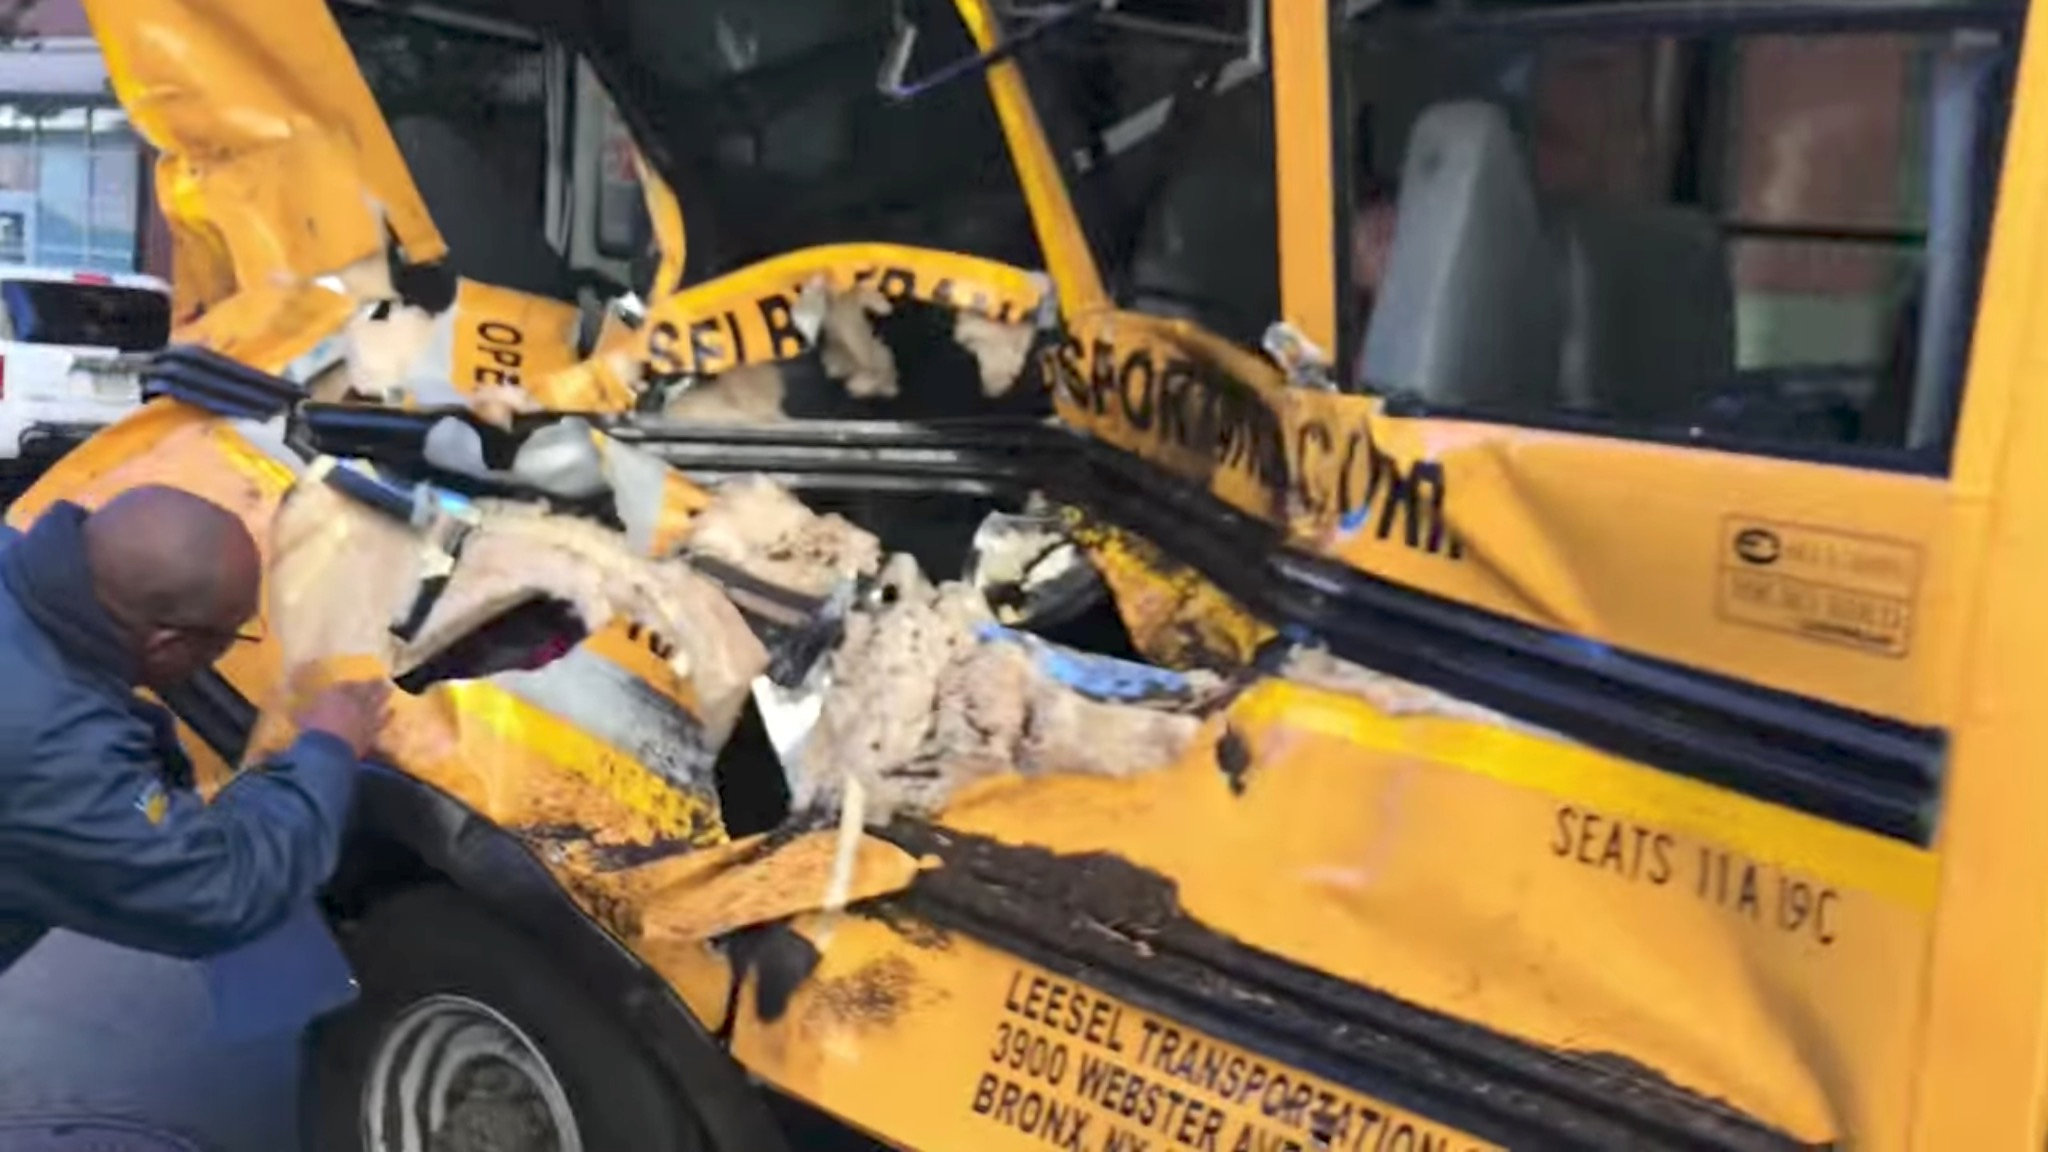 A damaged school bus is seen at the scene of a pickup truck attack in Manhattan, New York, U.S., October 31, 2017 in this picture obtained from social media.